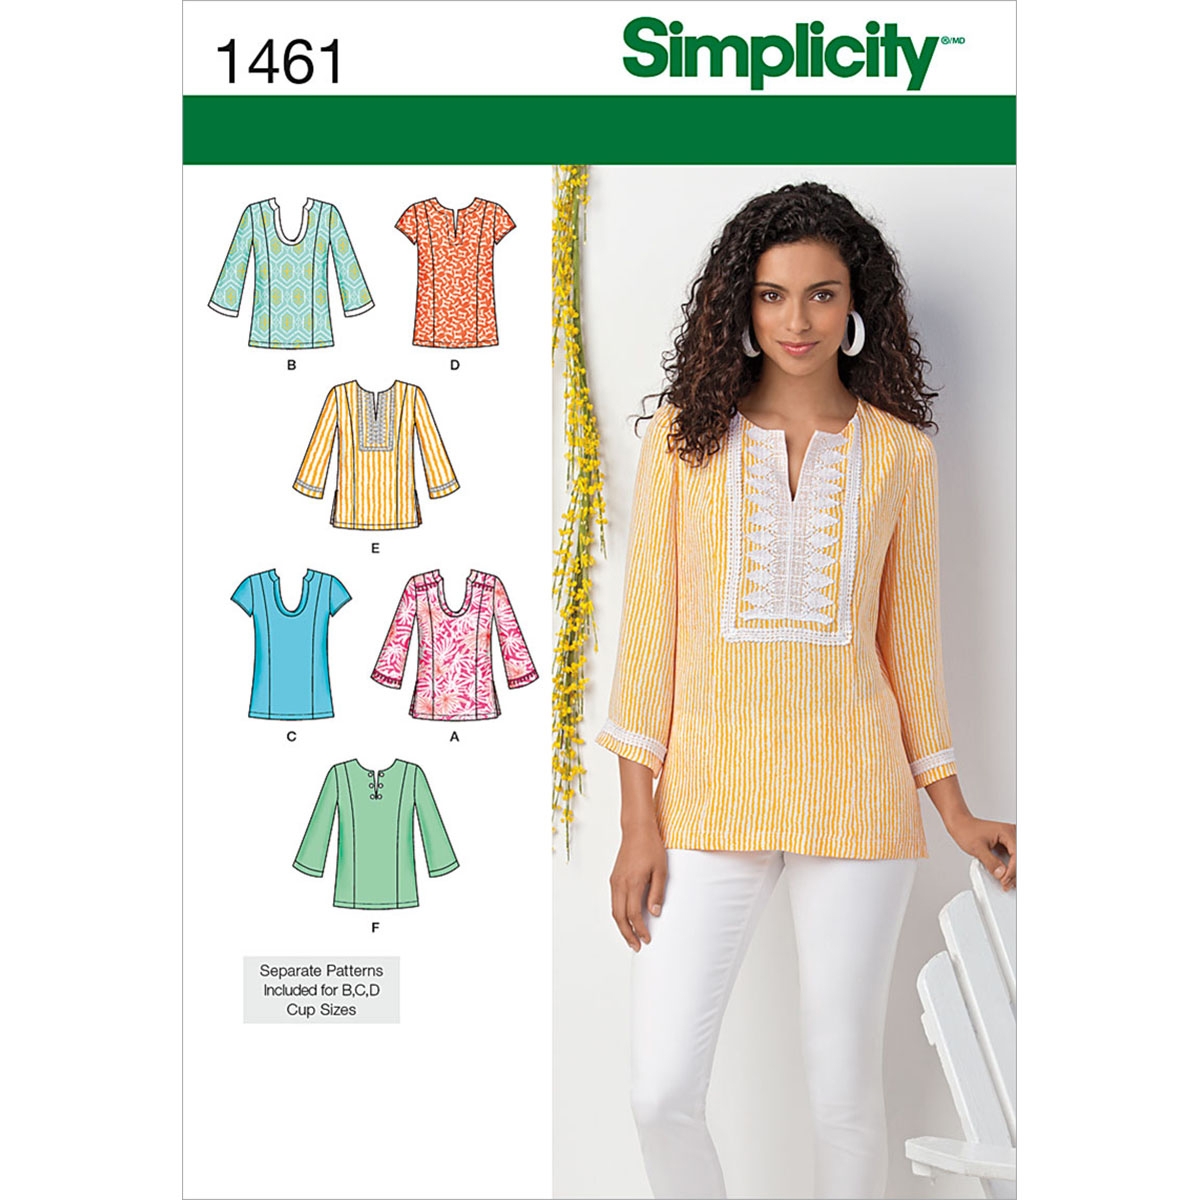 Simplicity Pattern 1461BB 20W-28W -Misses Tops Vests